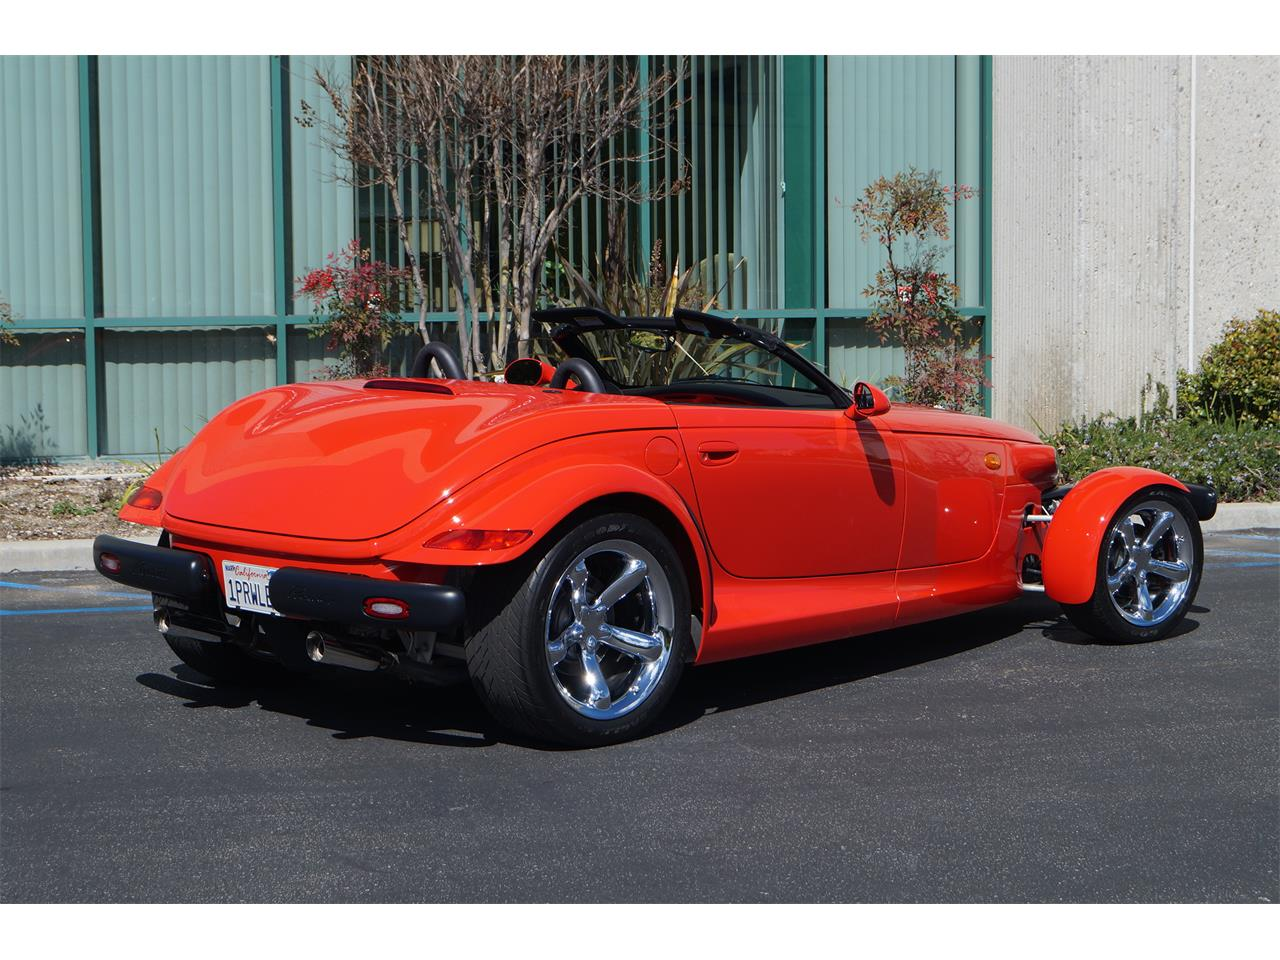 2000 Plymouth Prowler for sale in Thousand Oaks, CA – photo 4